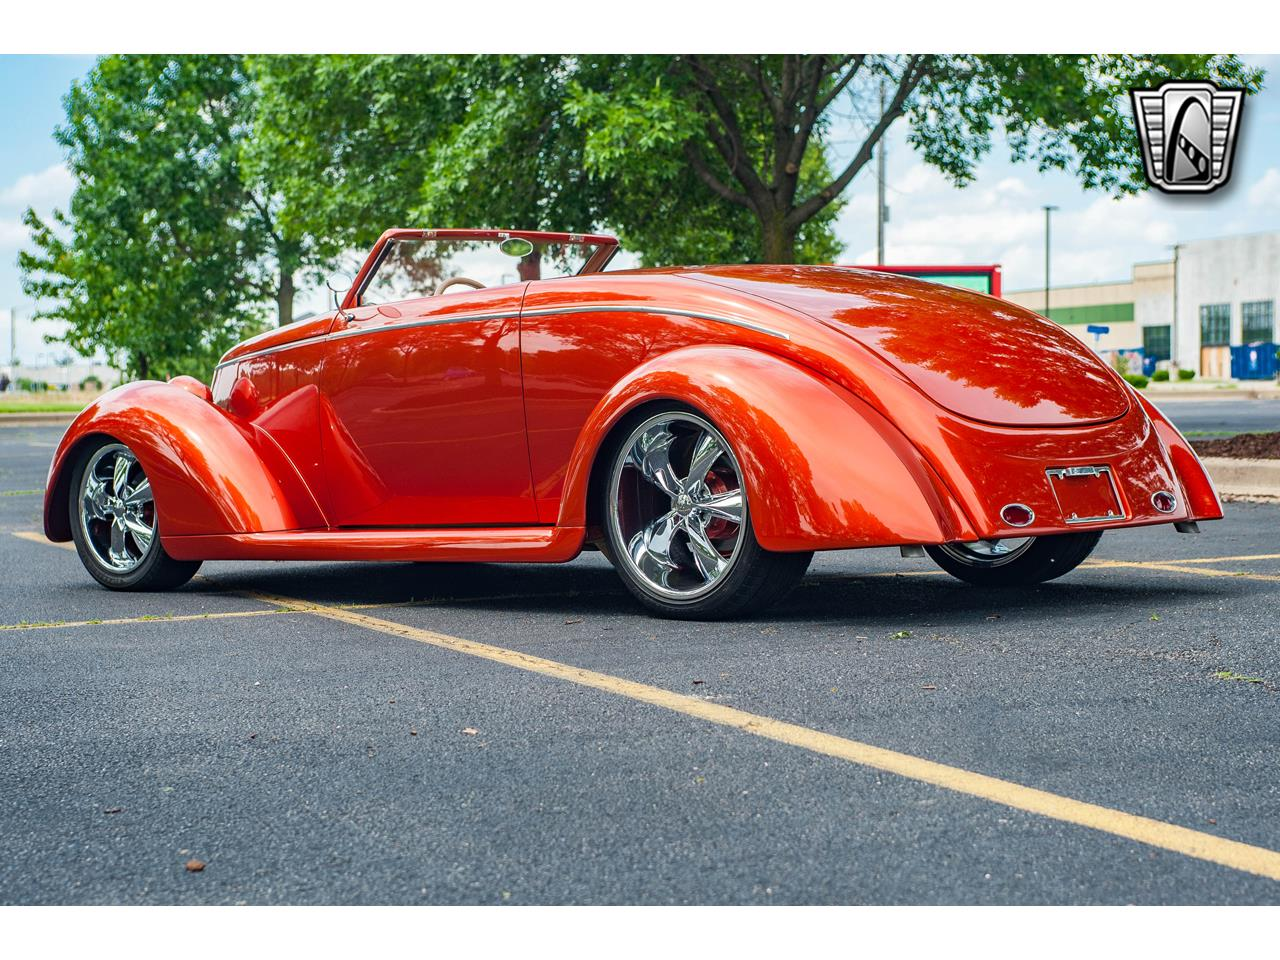 Large Picture of Classic '36 Roadster located in O'Fallon Illinois - $117,000.00 Offered by Gateway Classic Cars - St. Louis - QB9T